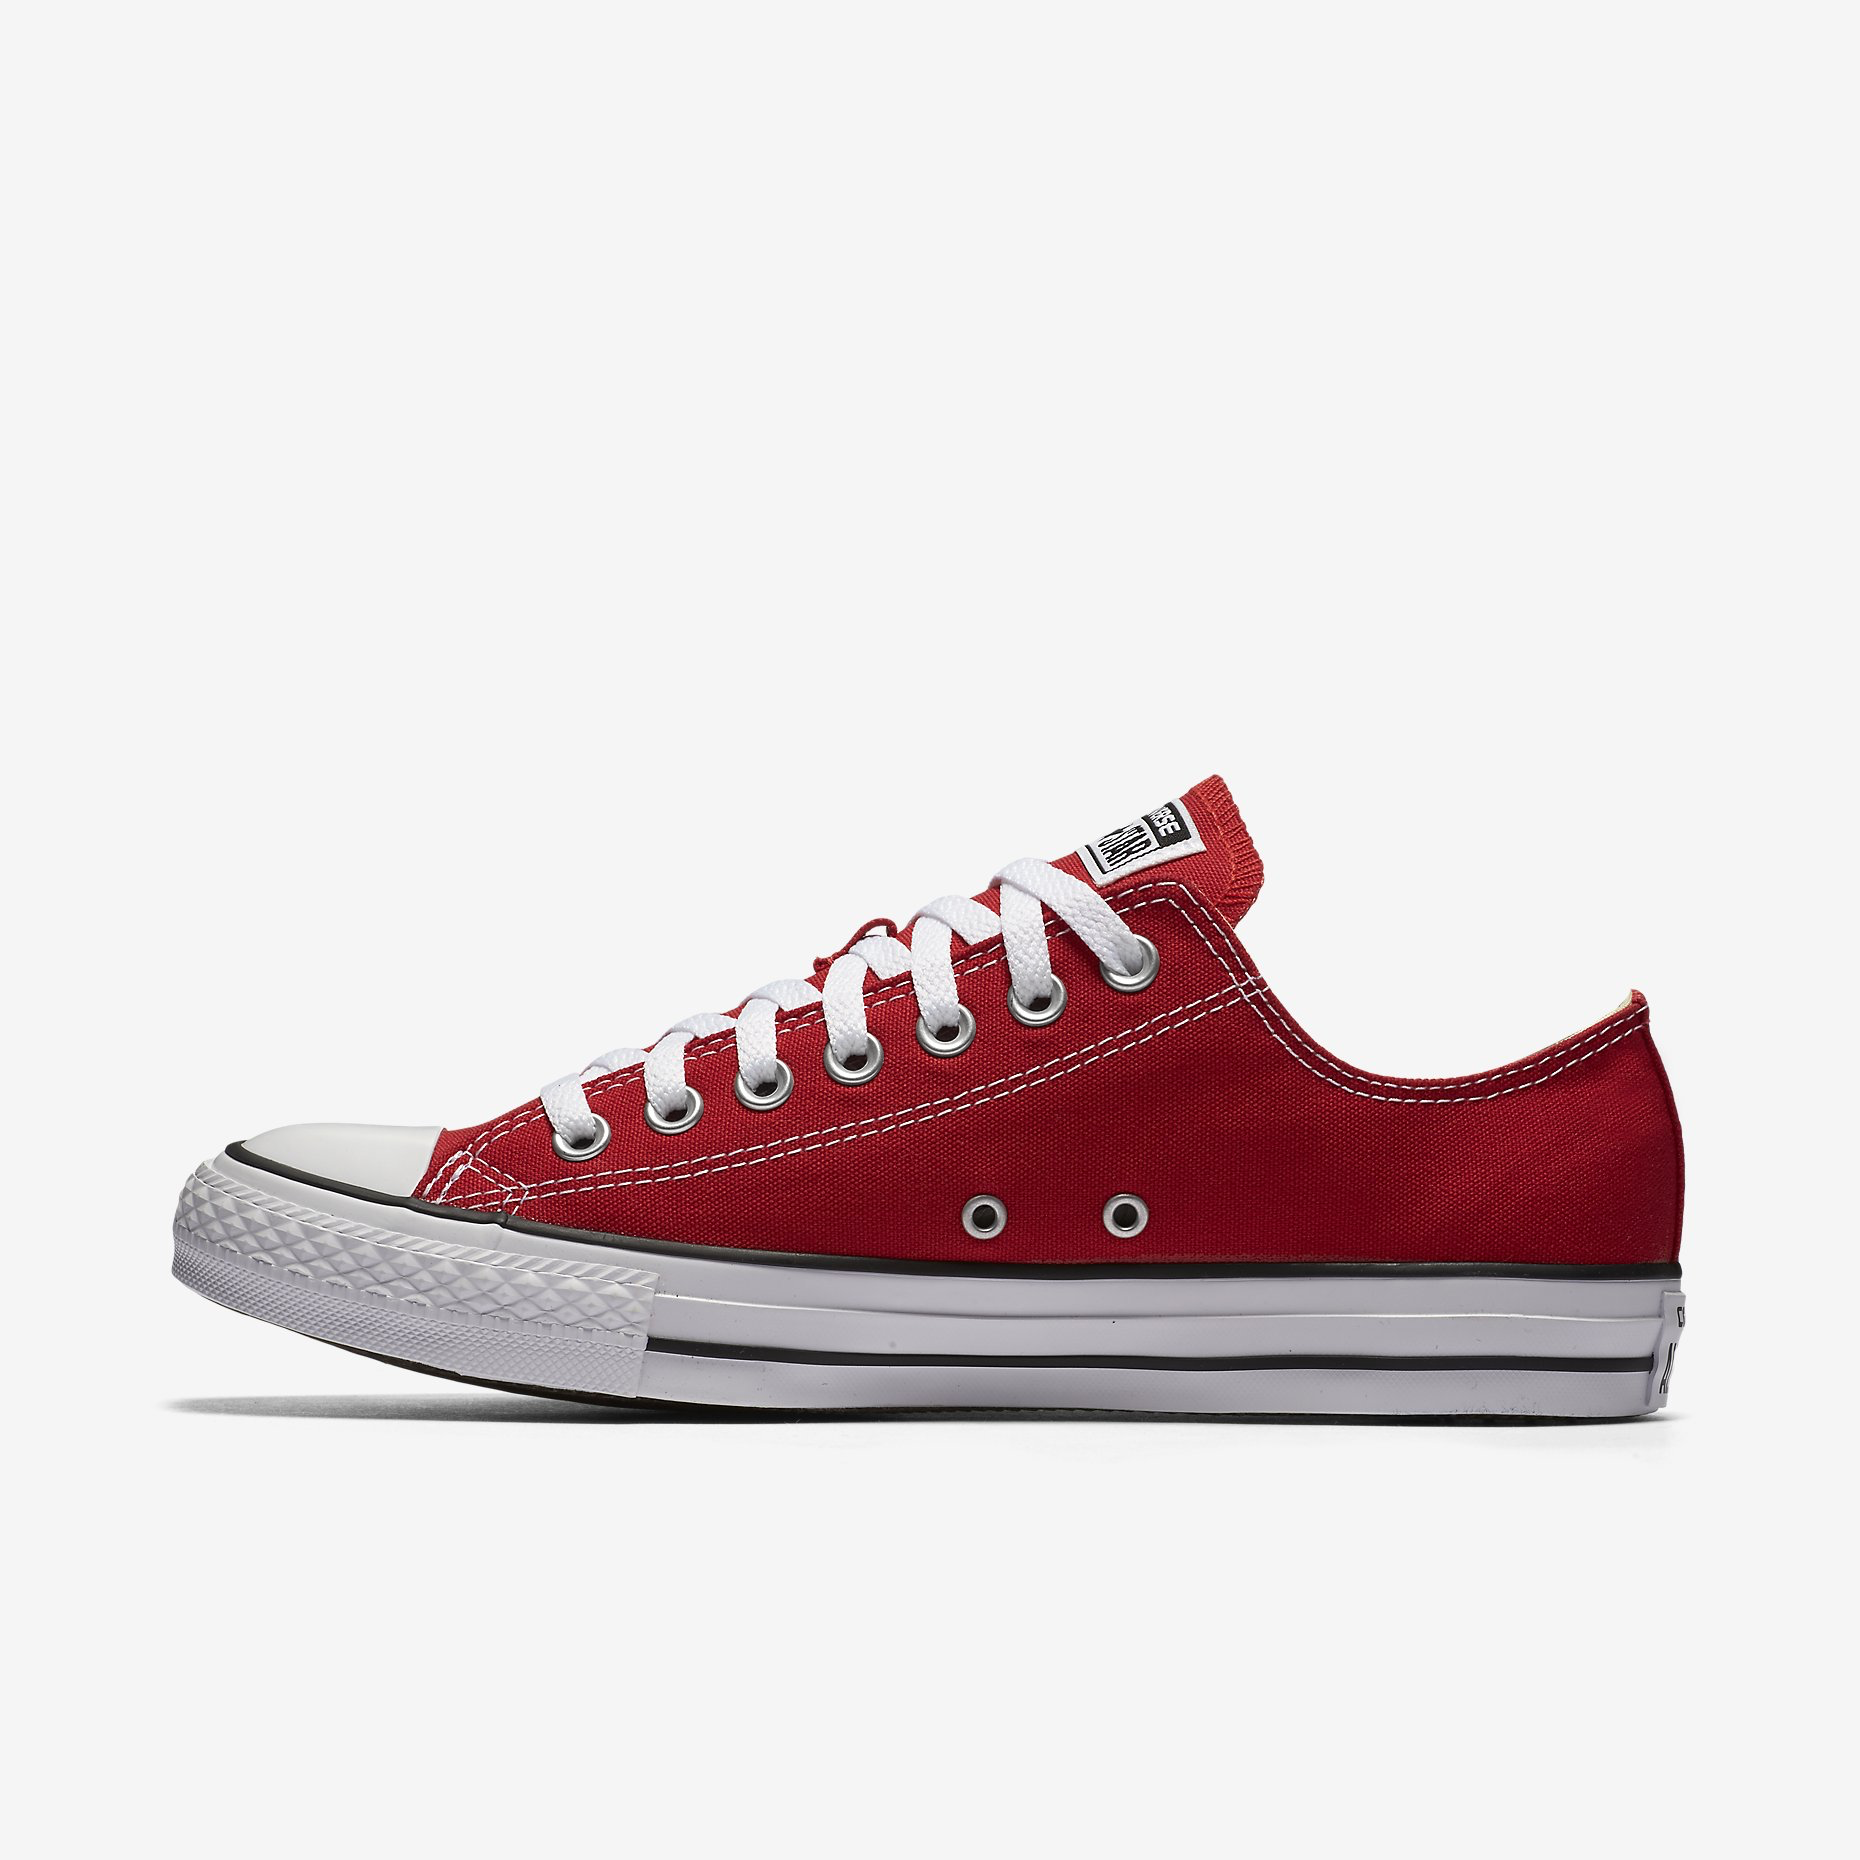 31b543acfd3e Converse Chuck Taylor All Star Womens Low Top Red